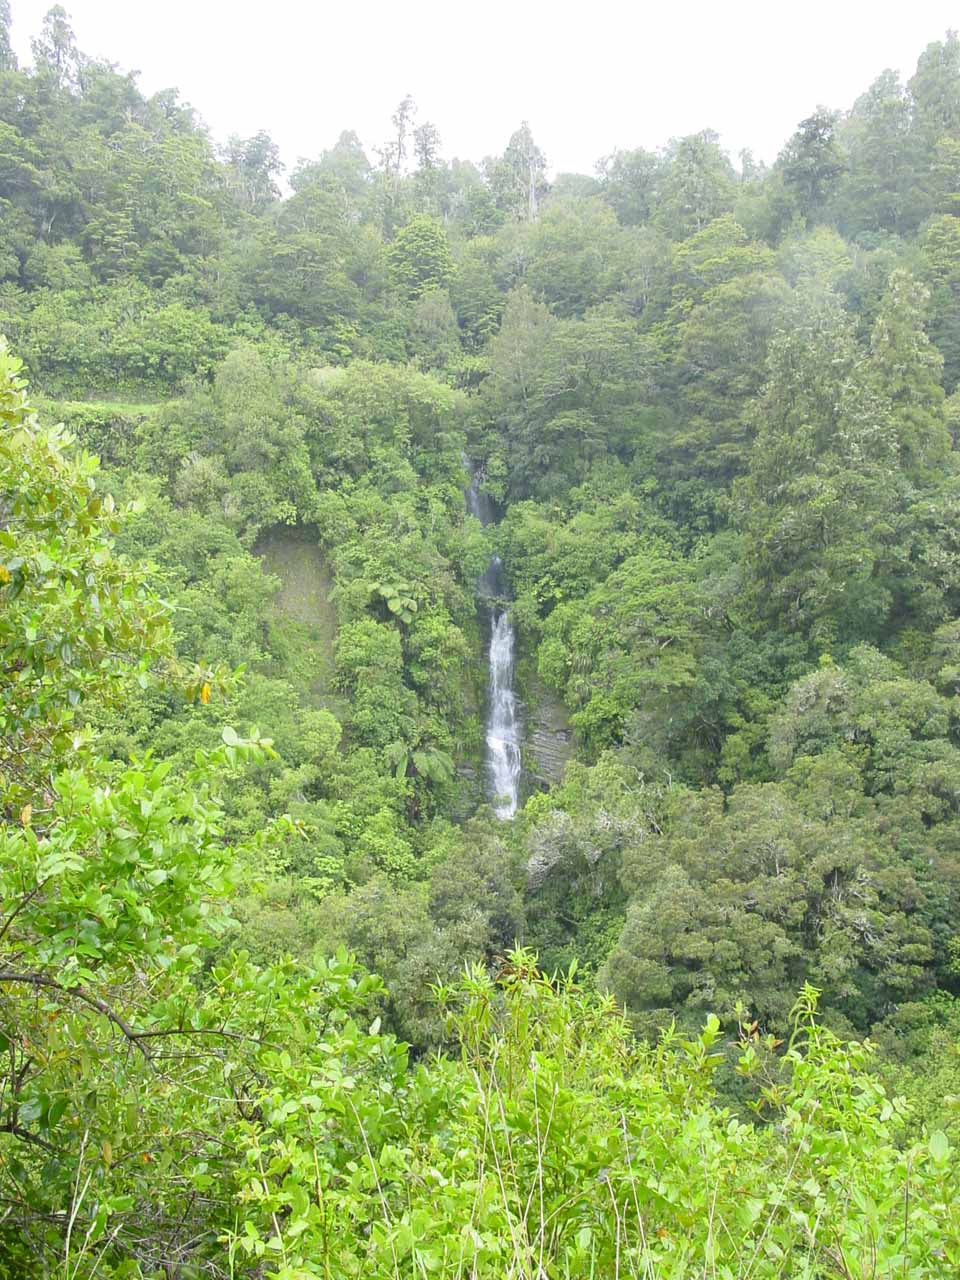 Looking back in the direction of the lookout from the bridge above Mokau Falls, we got this look at the obscure Tauwhare Falls